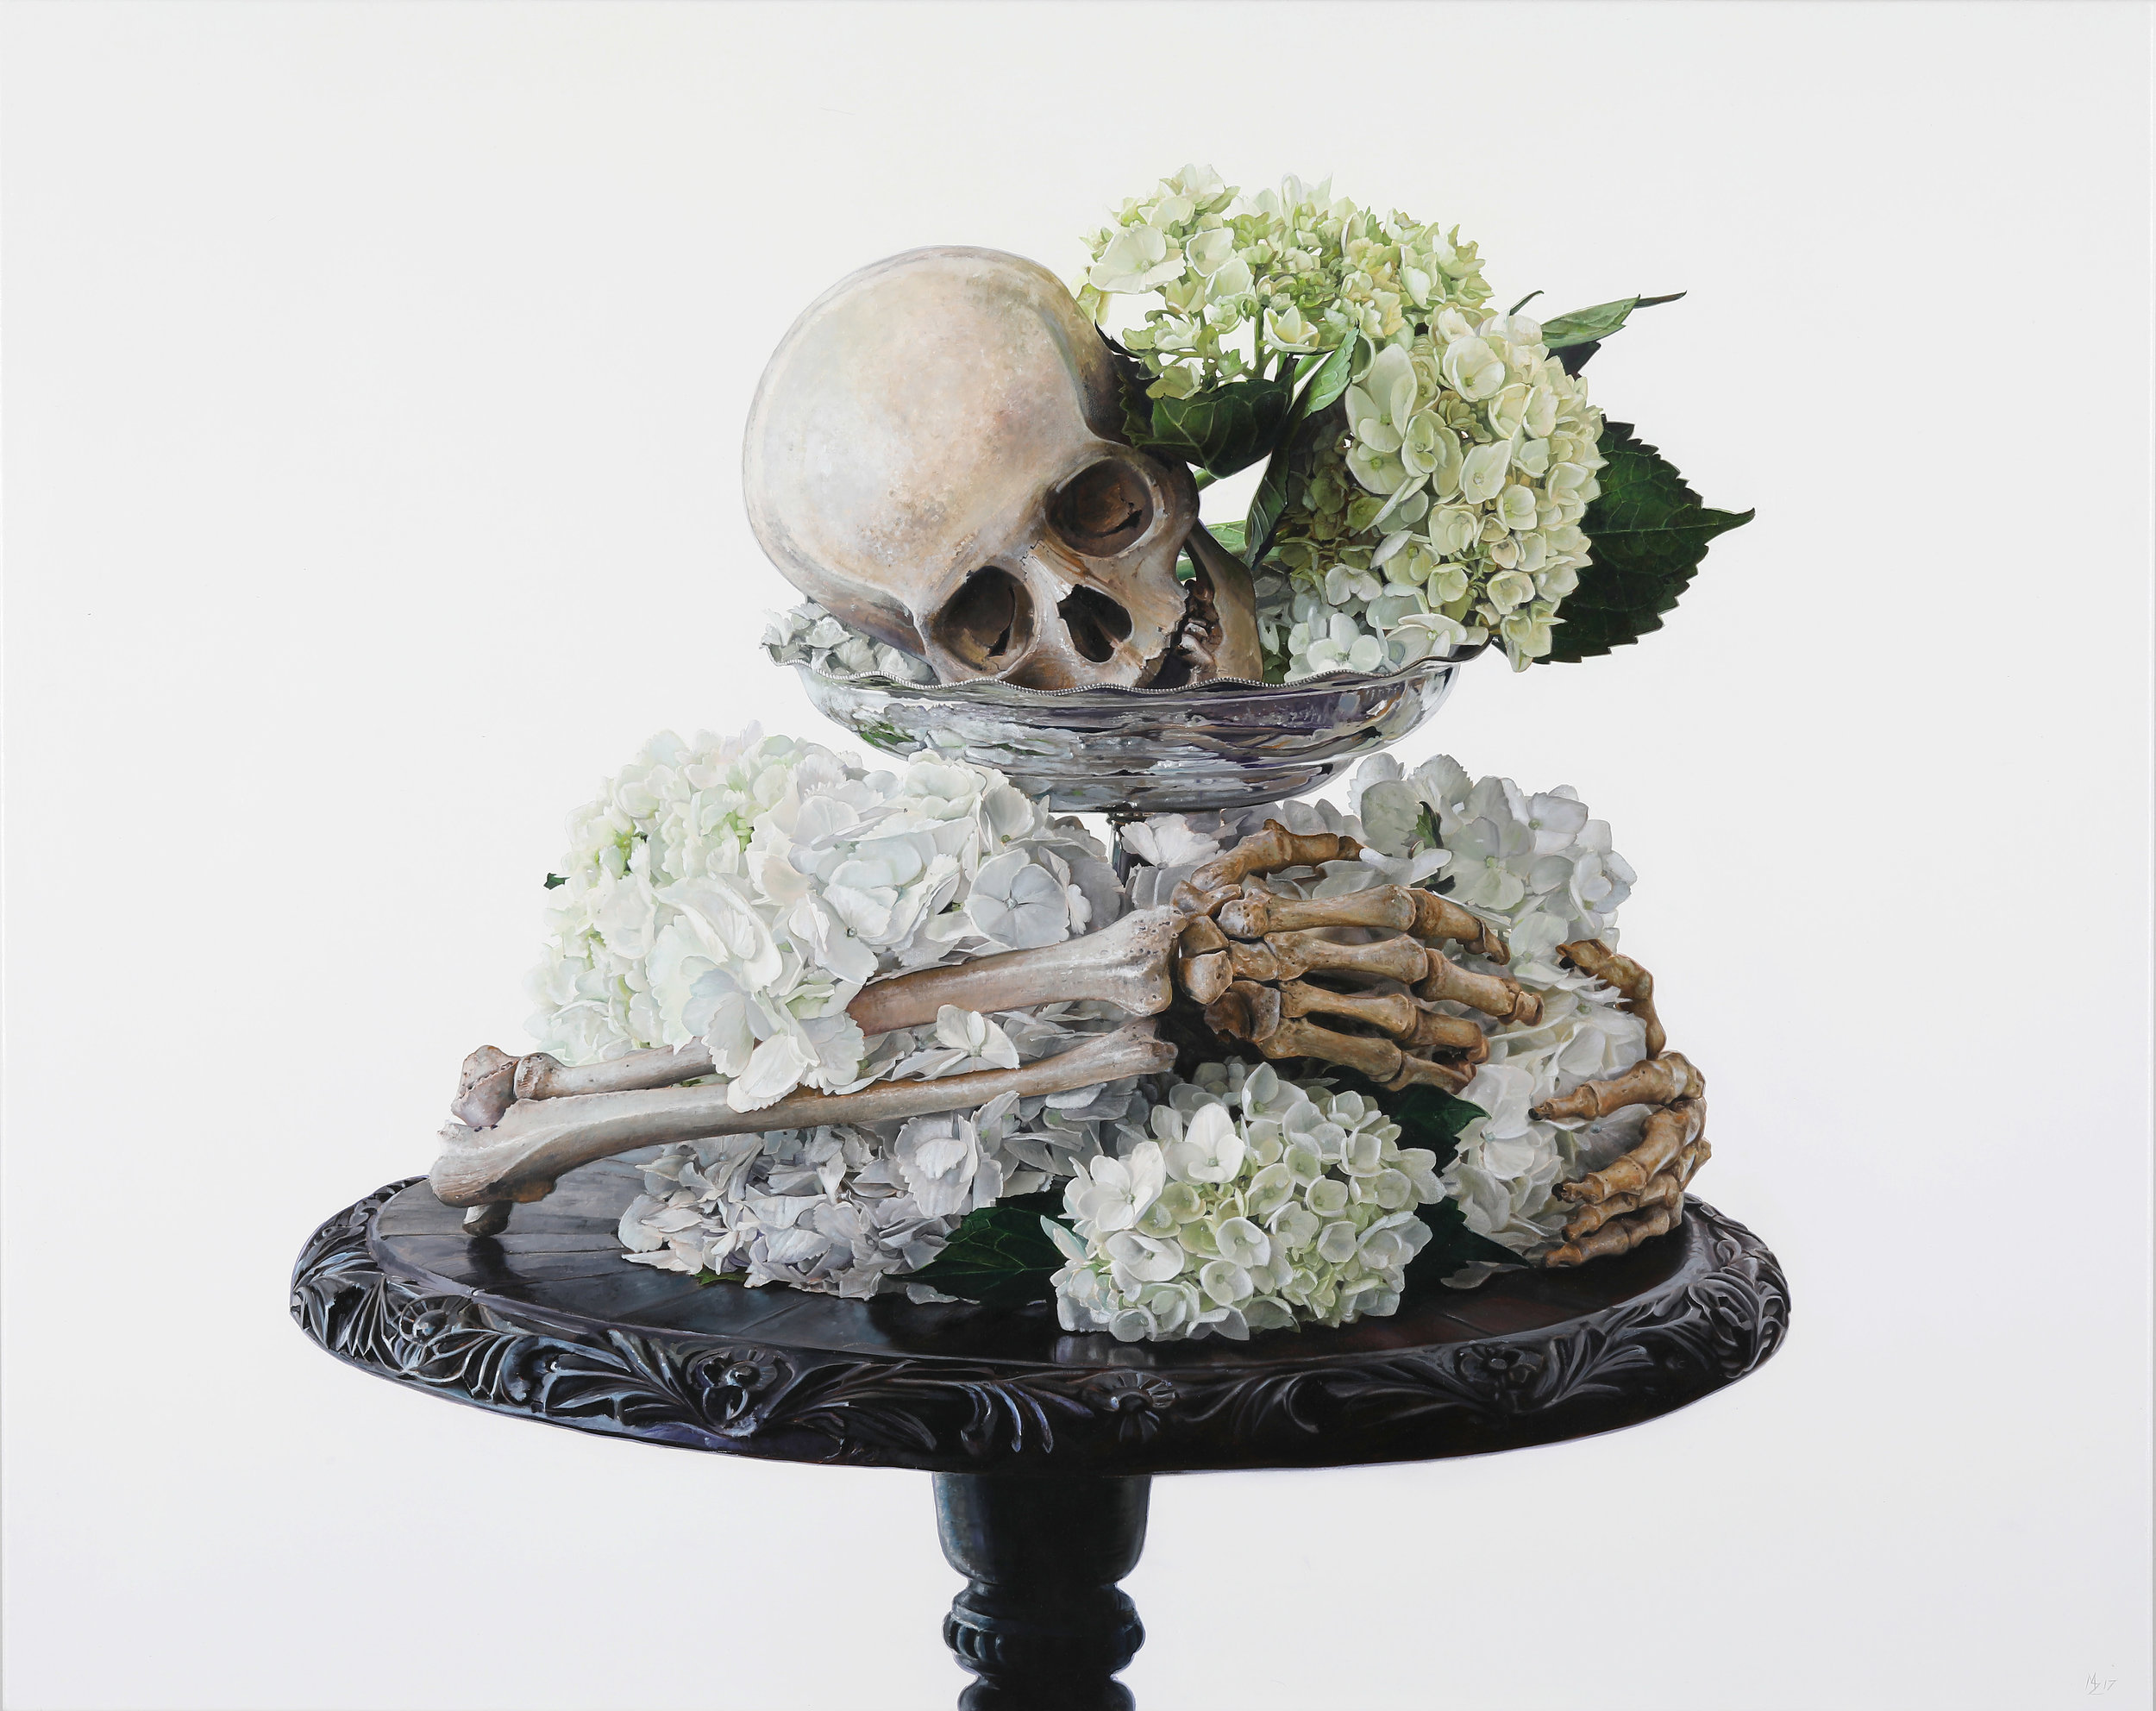 Michael Zavros,  Skull with Hydrangea , 2107, oil on canvas, 800 x 1000 mm